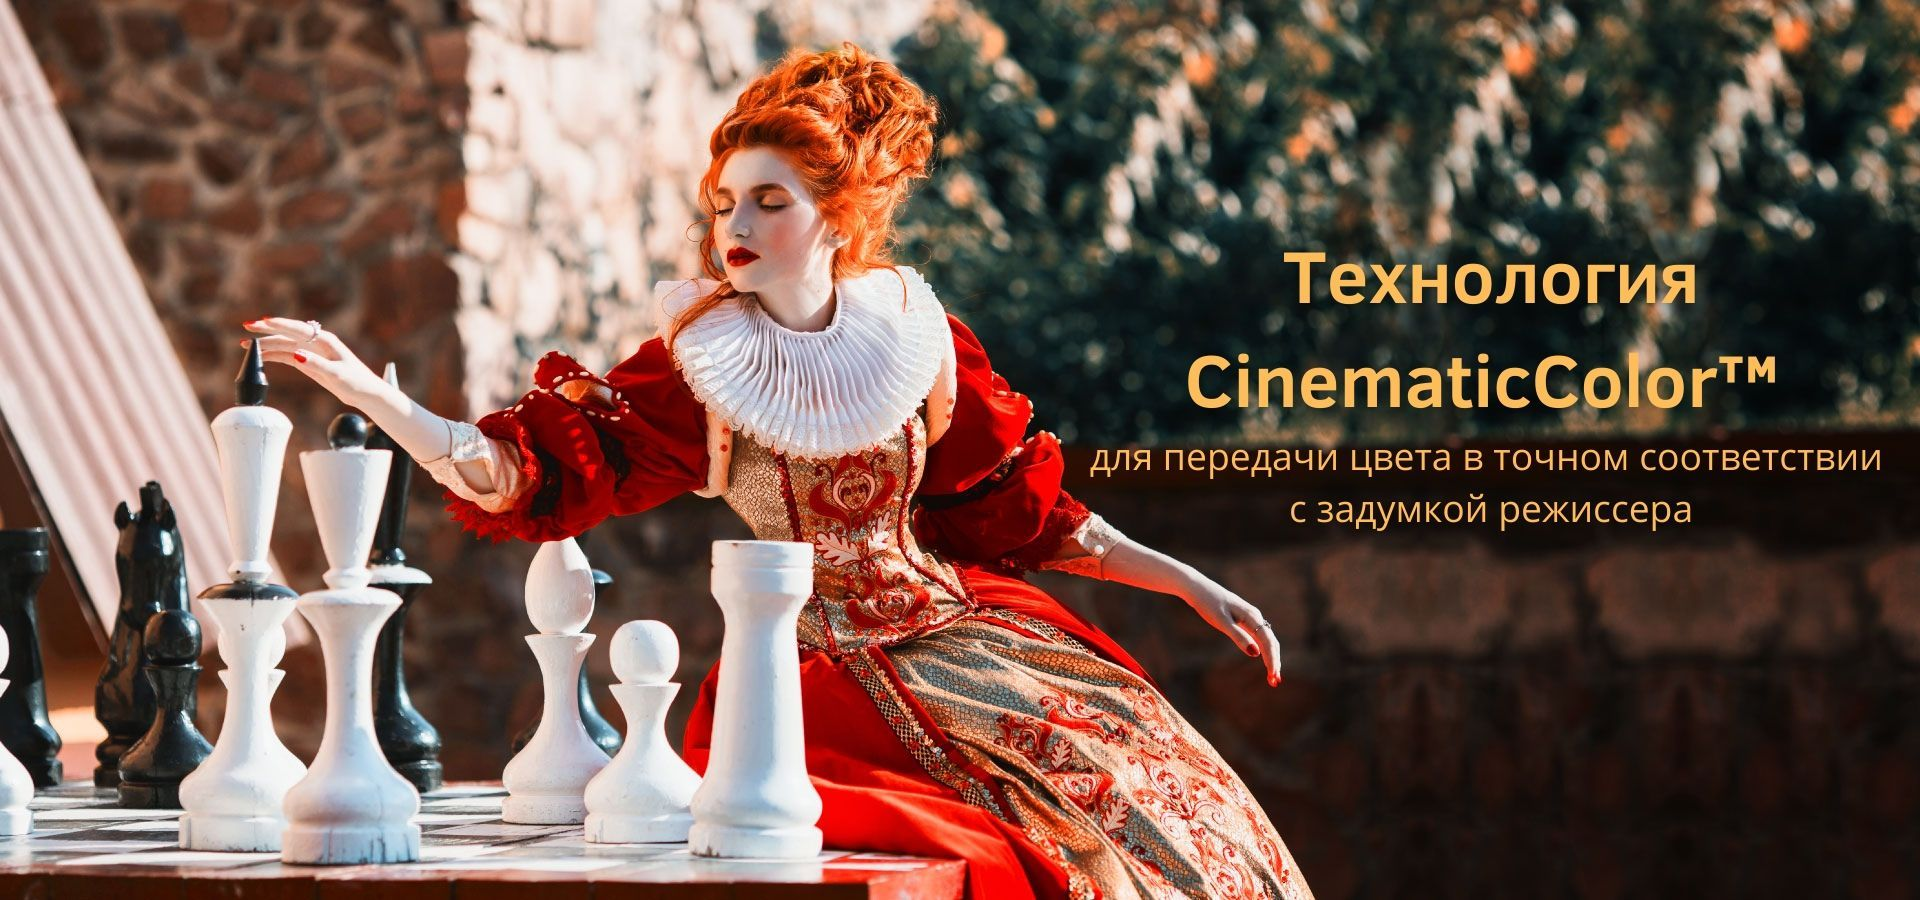 Проекторы BenQ ​CinematicColor 1